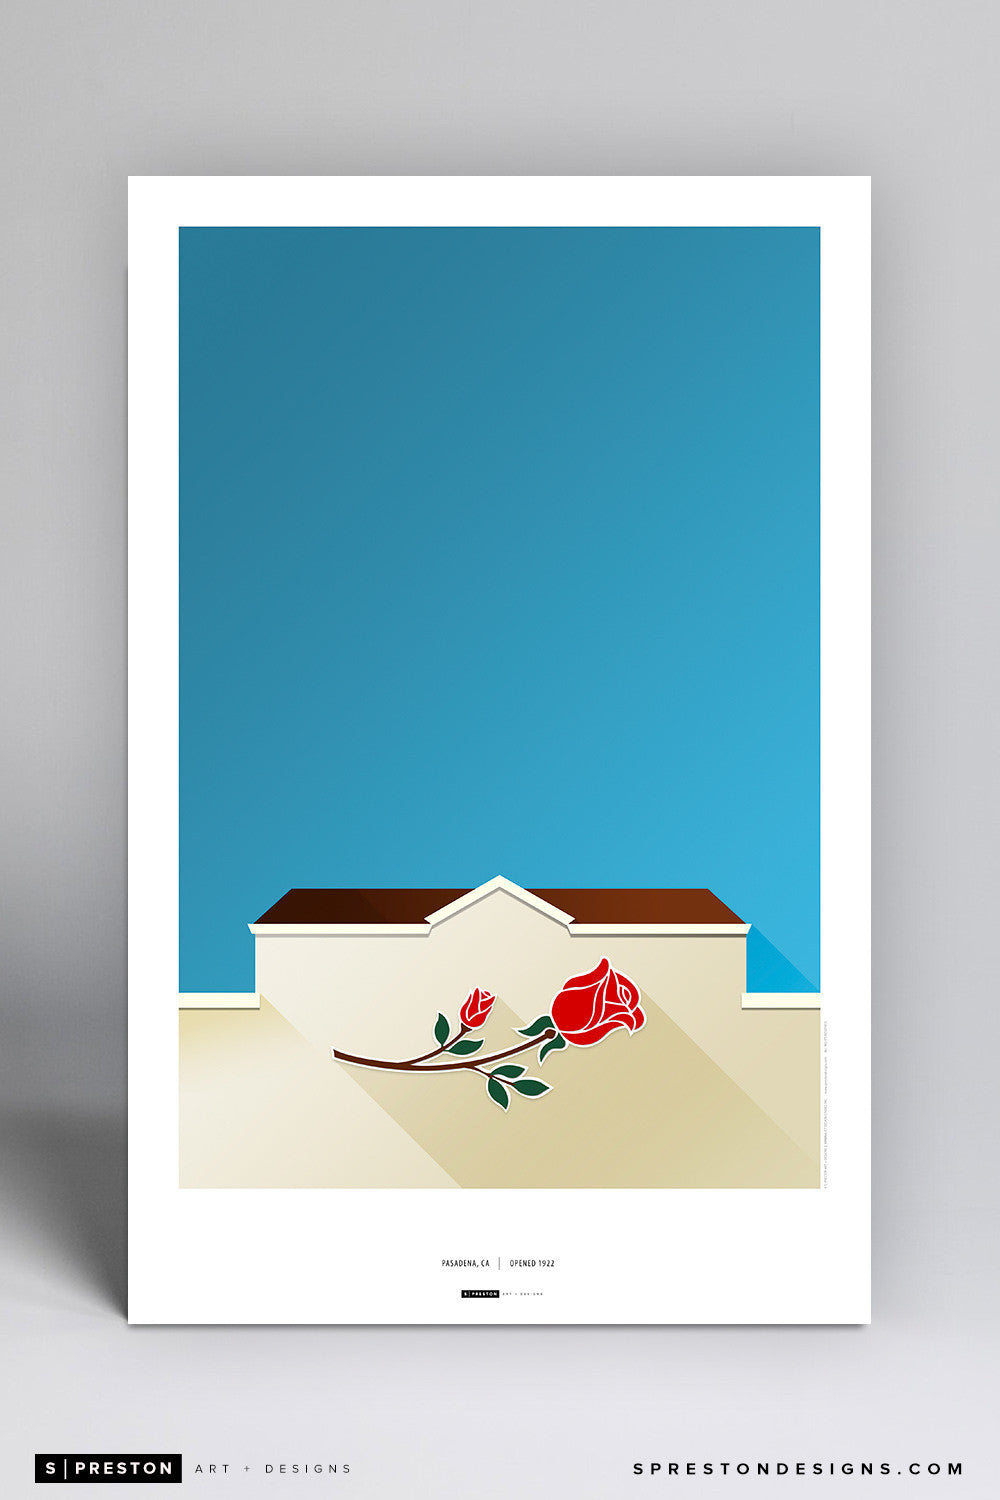 Minimalist Rose Bowl Art Poster Art Poster - UCLA - S. Preston Art + Designs